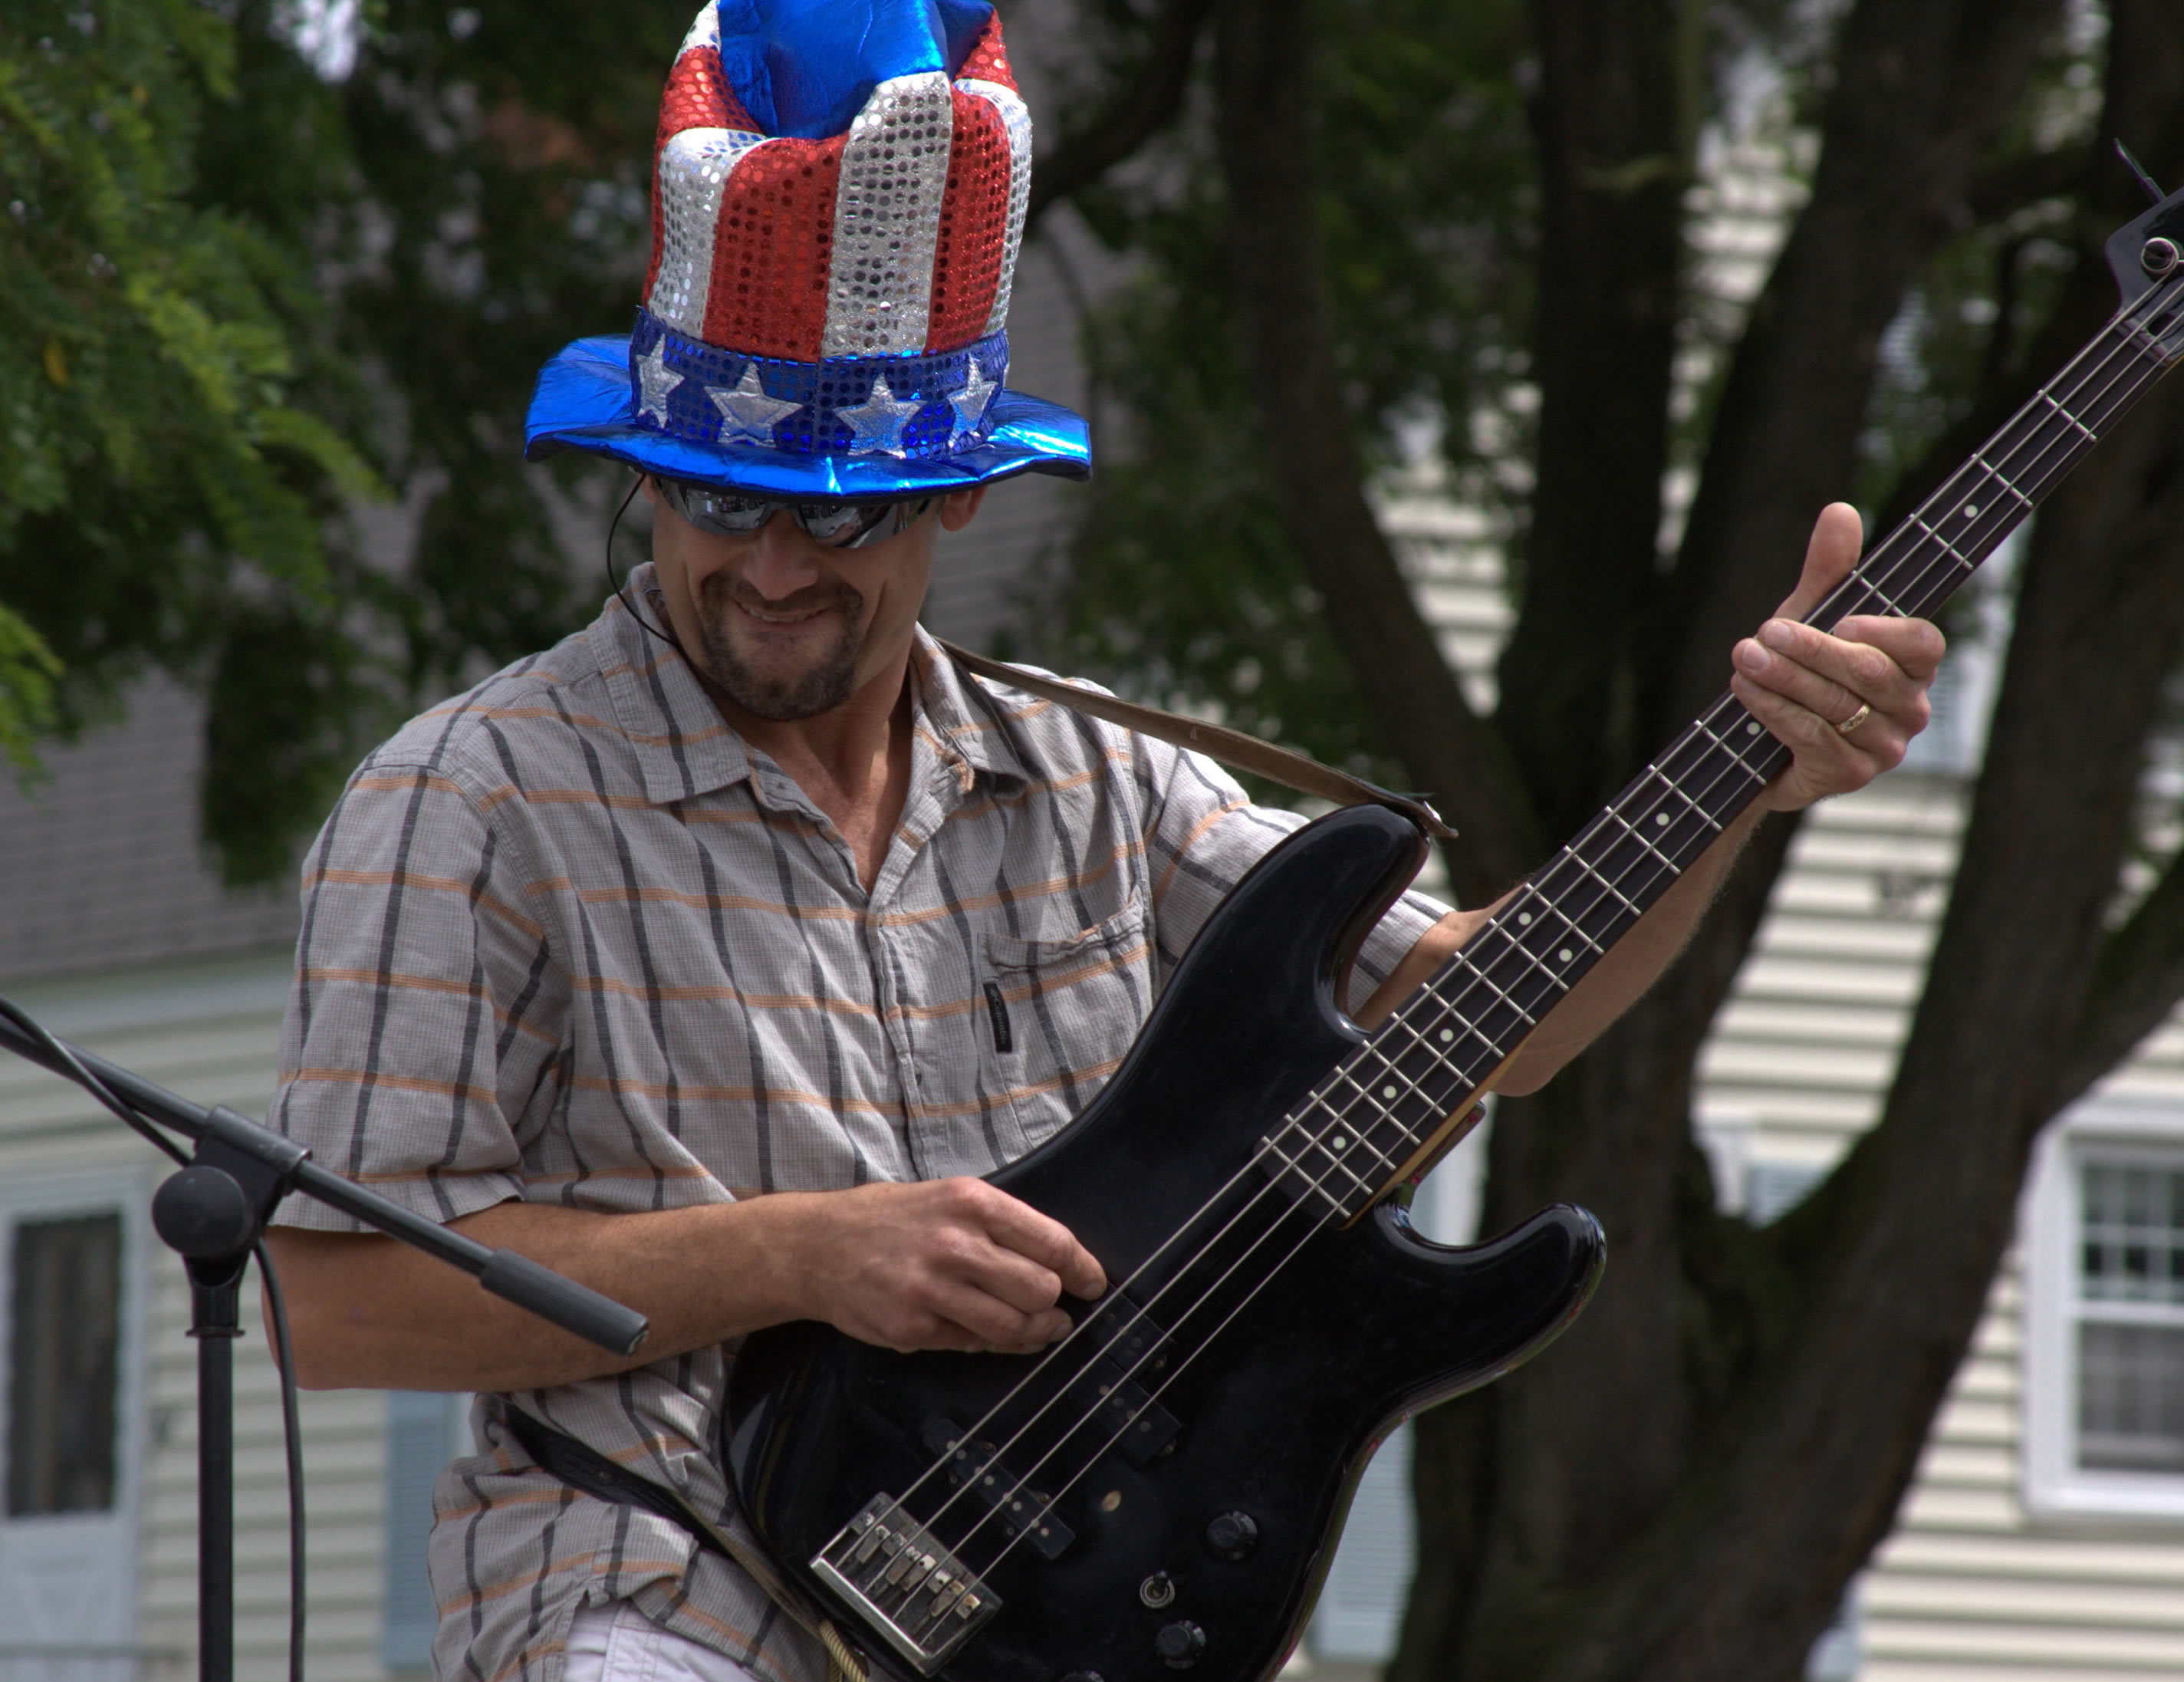 Dude shreds the guitar while wear Uncle Sam hat